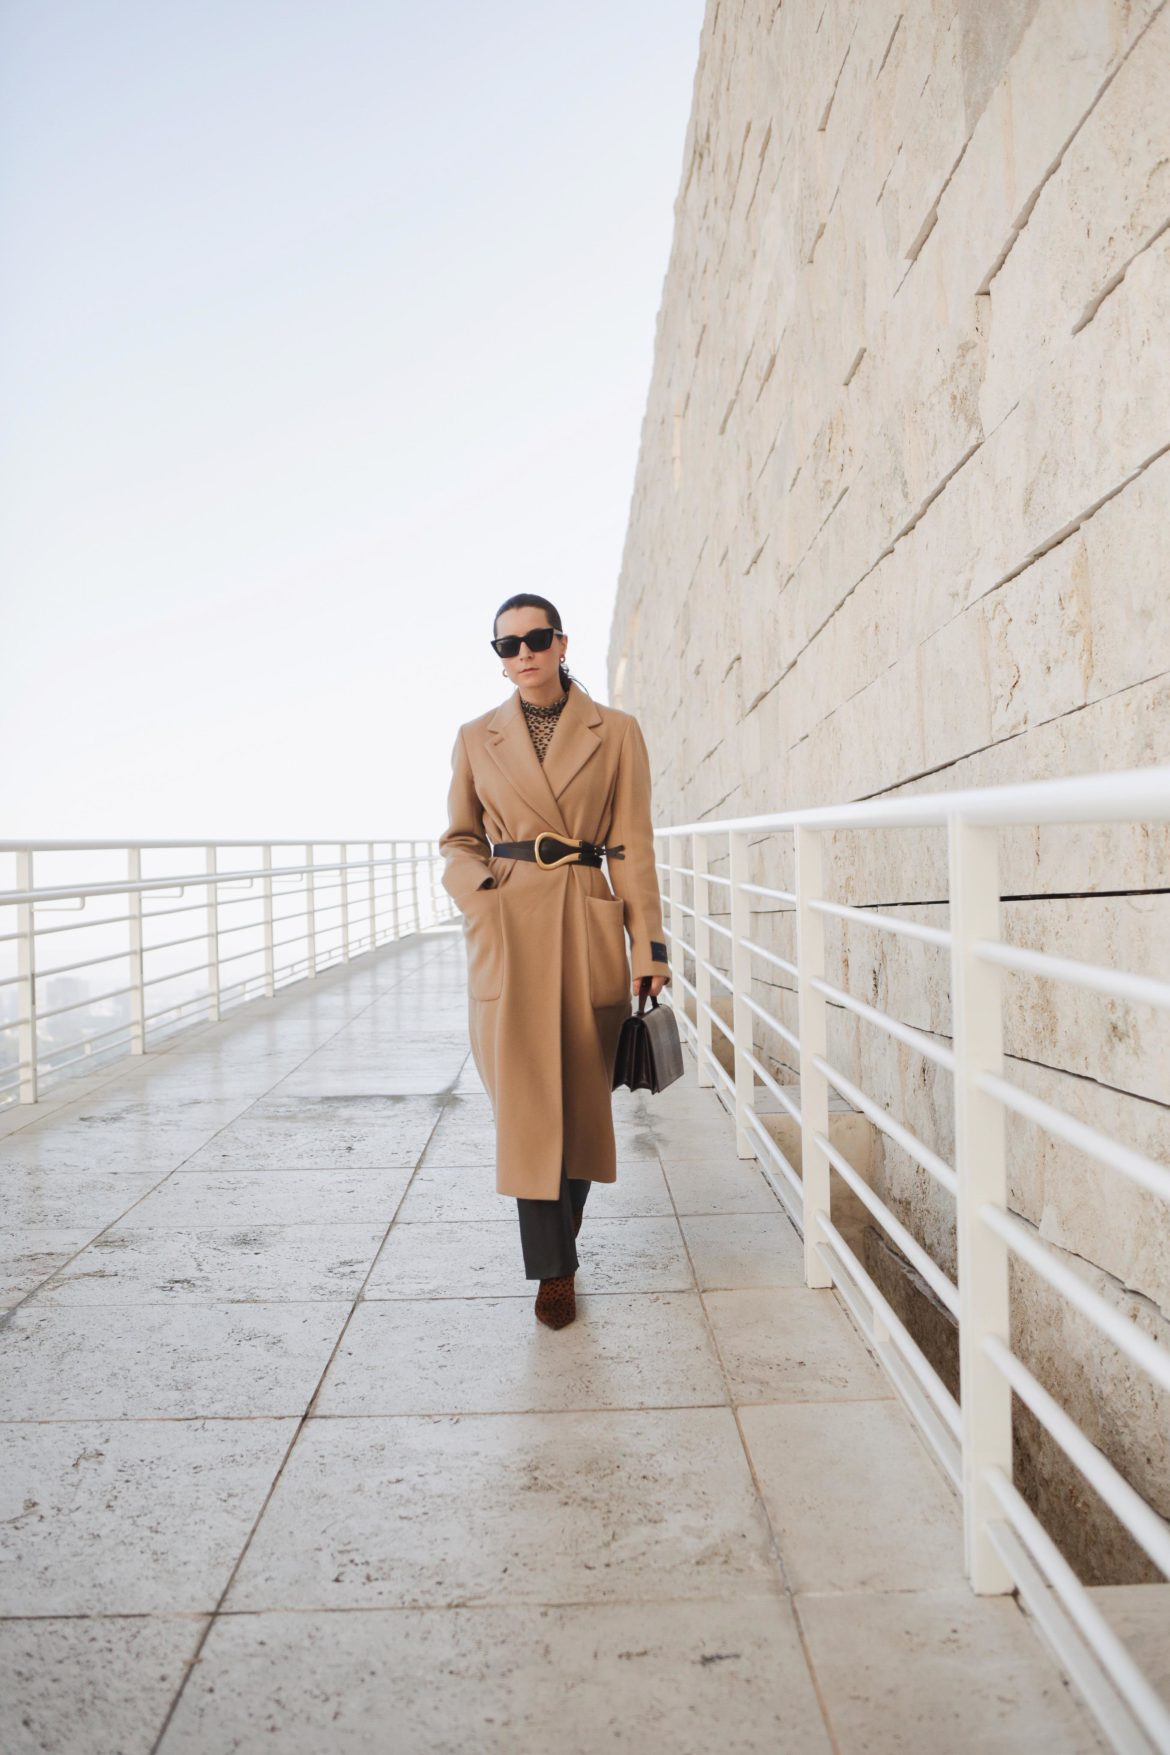 Winter style: How to style the beige wool coat. Aritzia wool coat, belt bottega veneta via Farfetch, pants equipment, AGL leopard print boots, bag yuul yie. French fashion blogger julia comil, location getty center los angeles. Fashion editorial